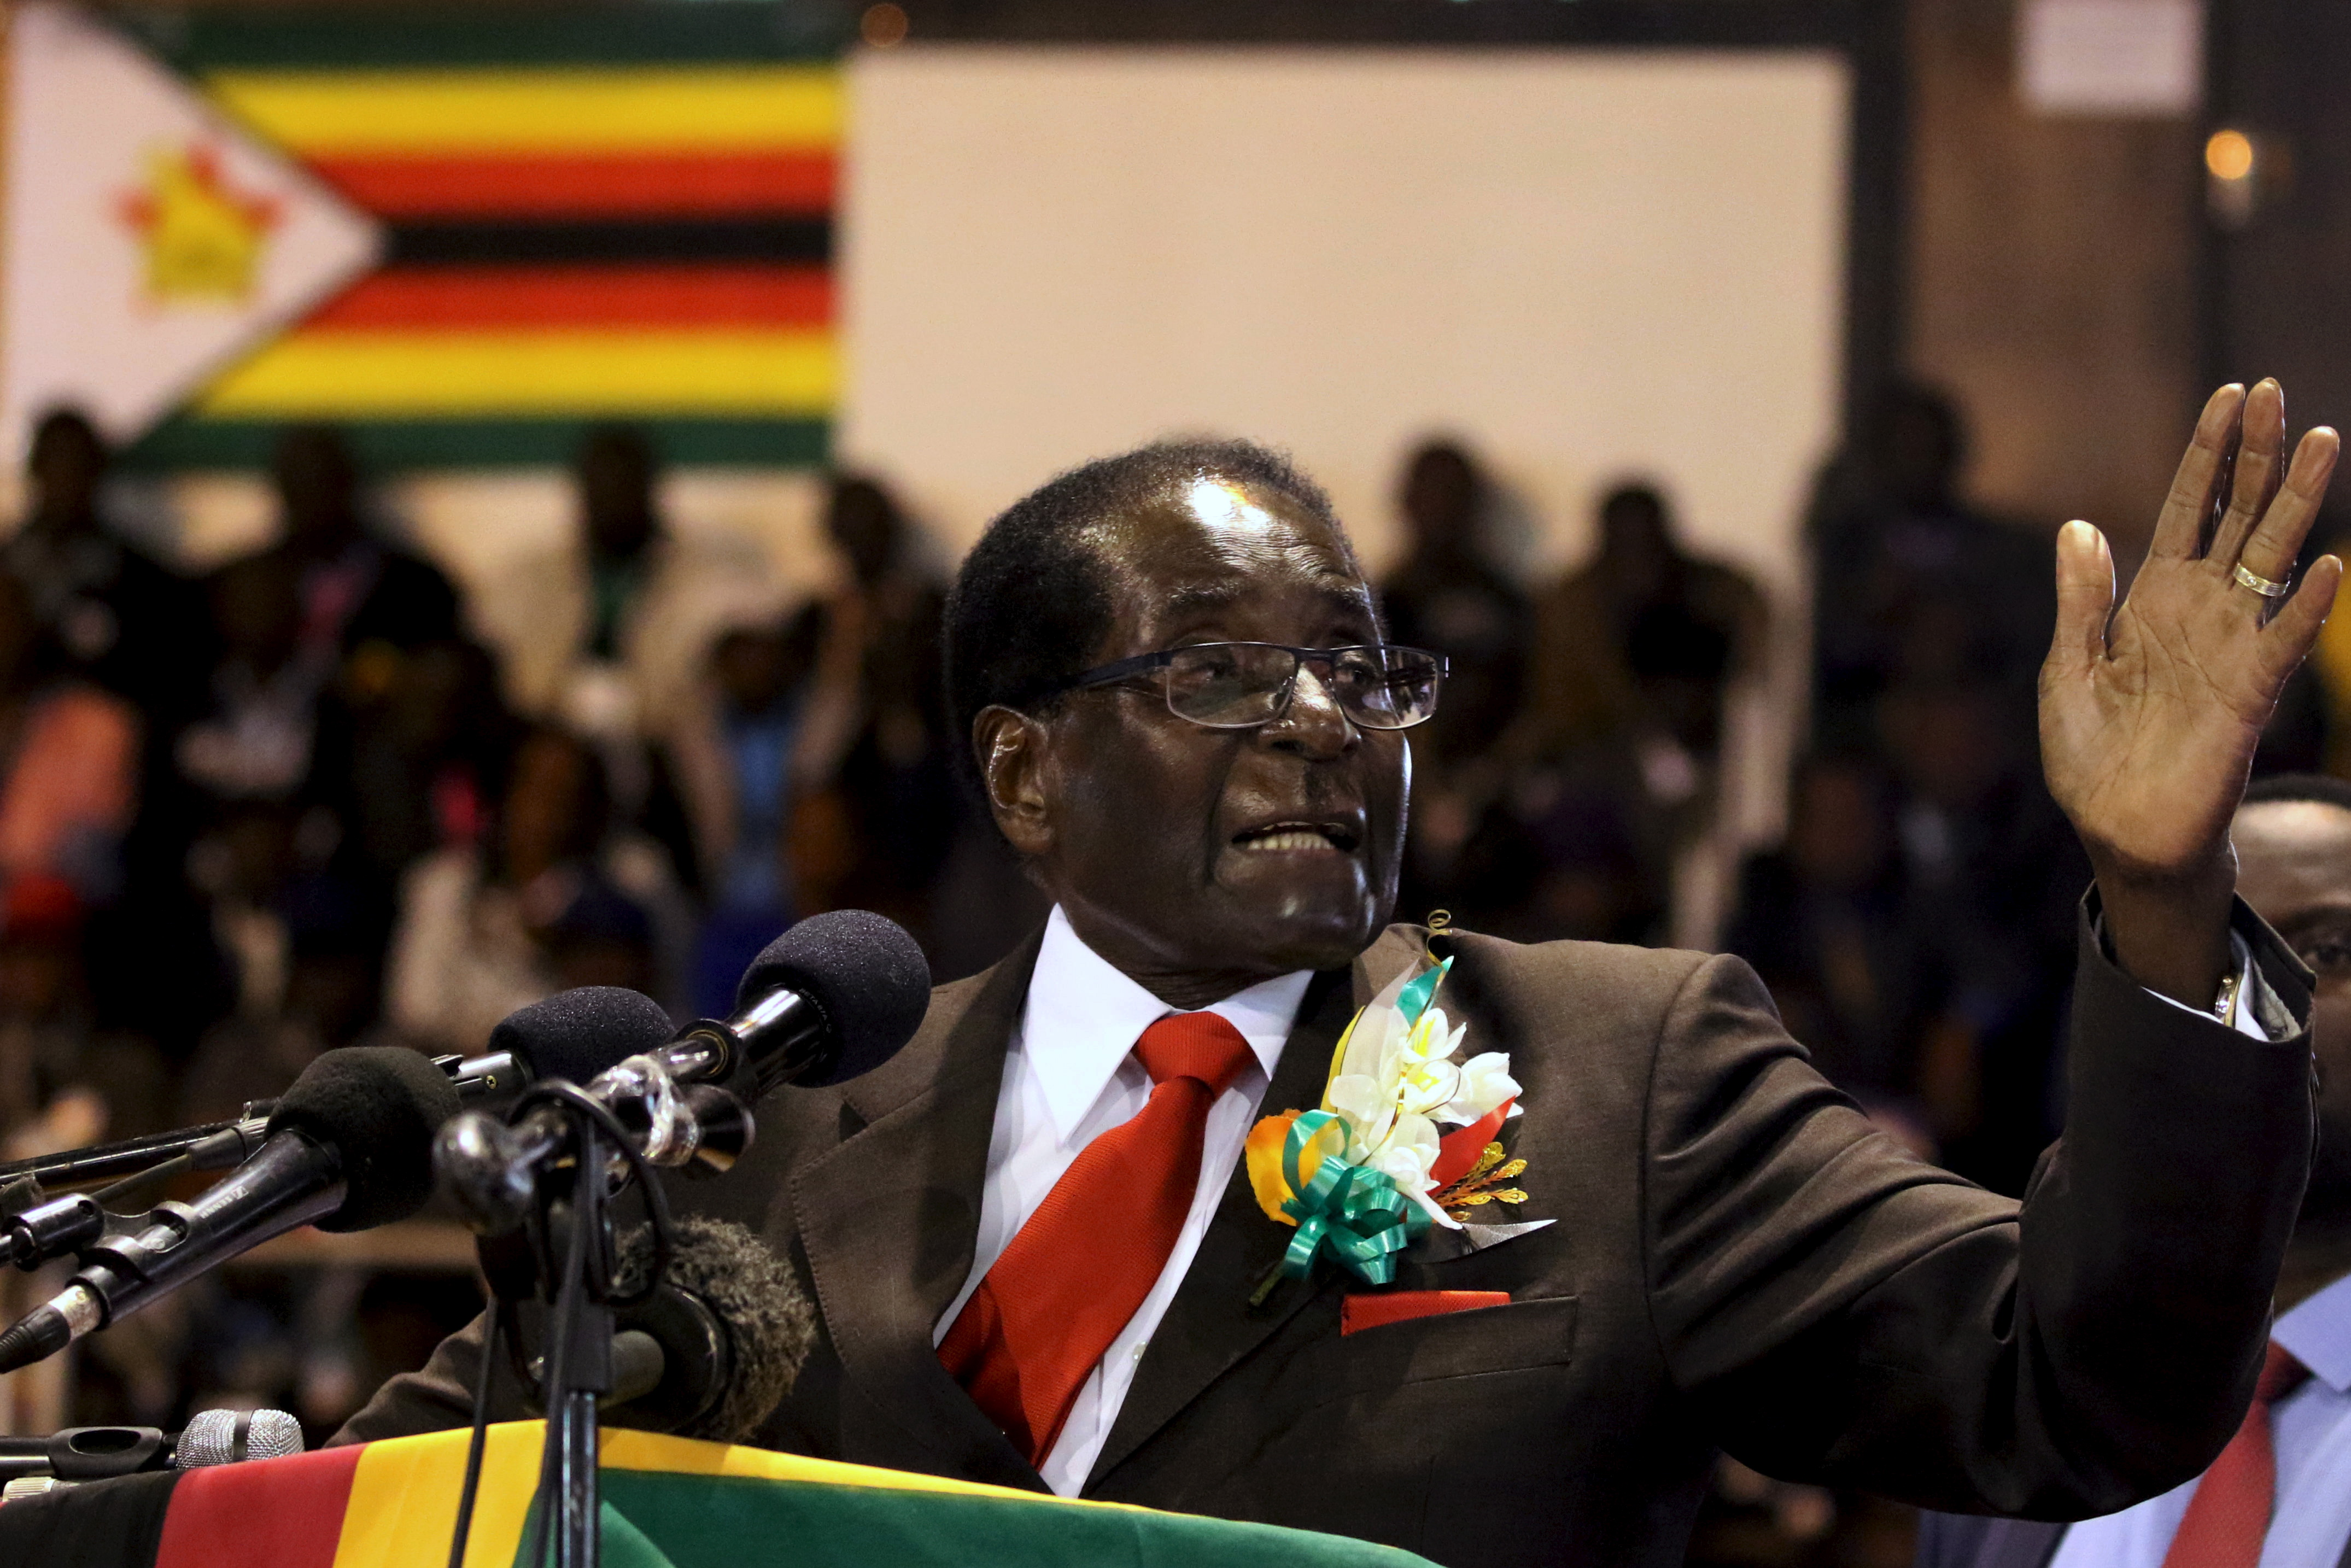 Zimbabwe's President Robert Mugabe gestures while addressing a meeting of veterans of the country's independence war in the capital Harare on April 7, 2016